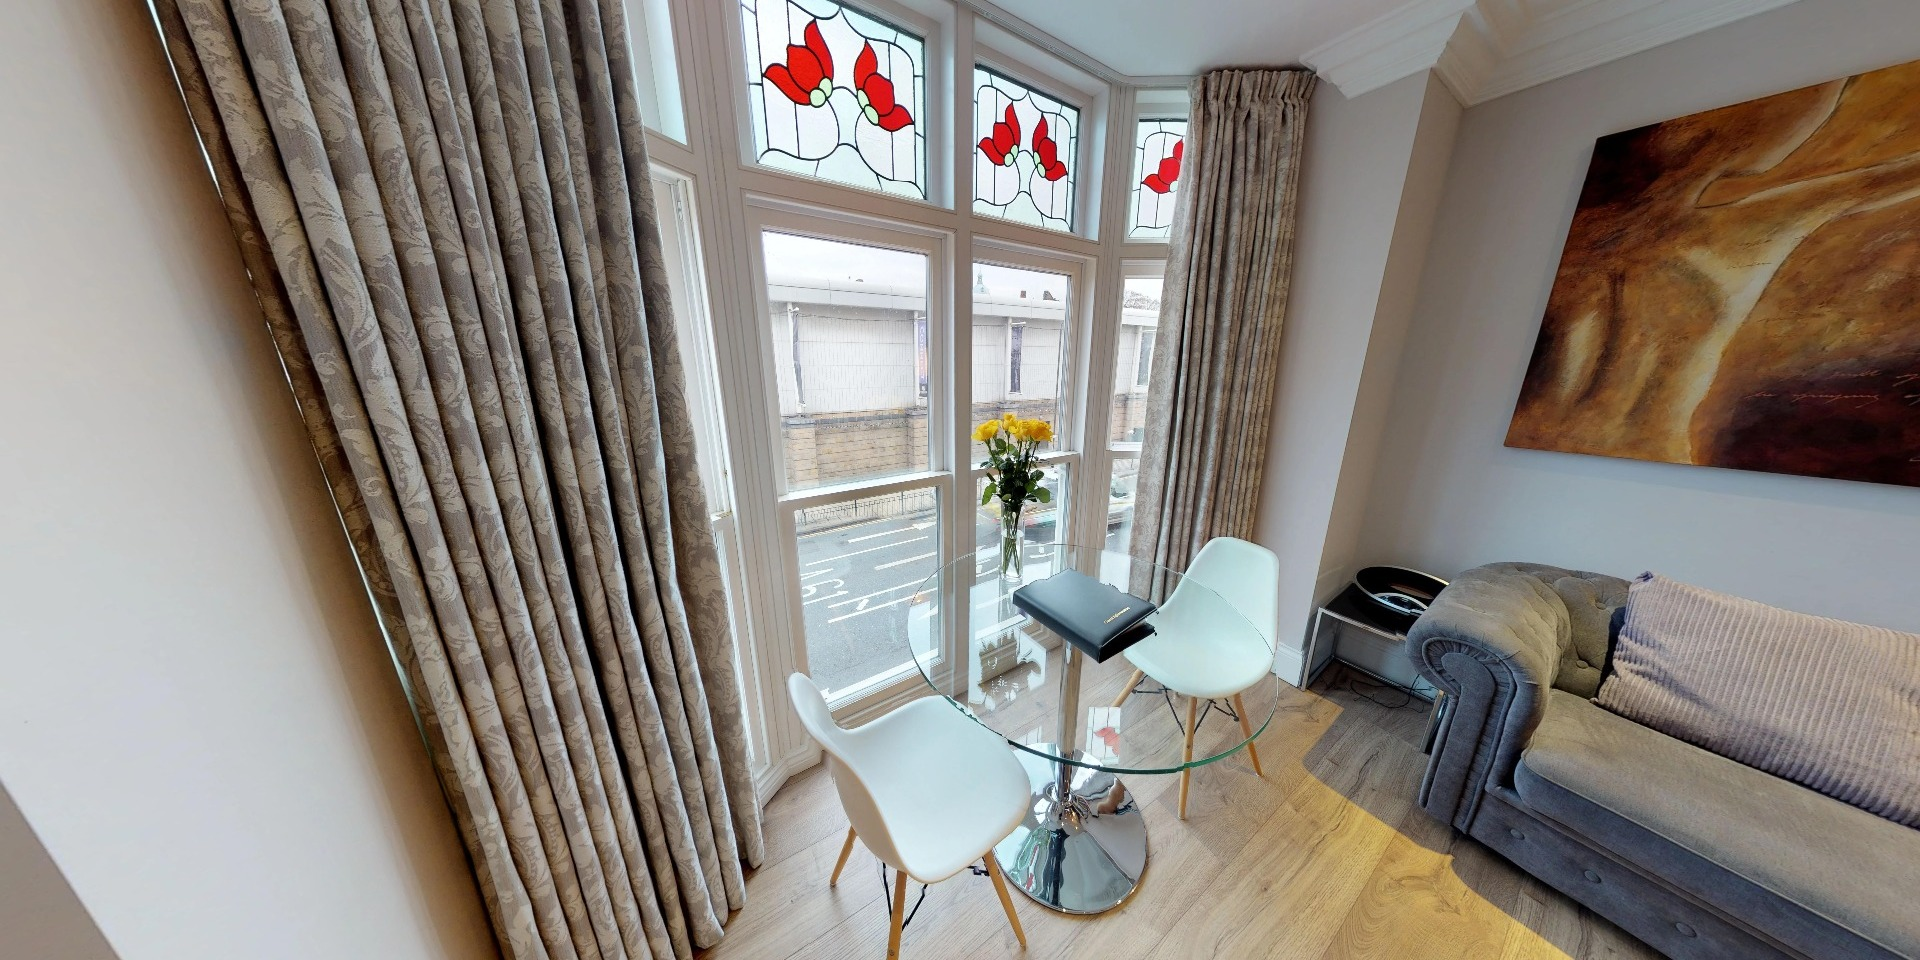 Harrogate Lifestyle Apartments